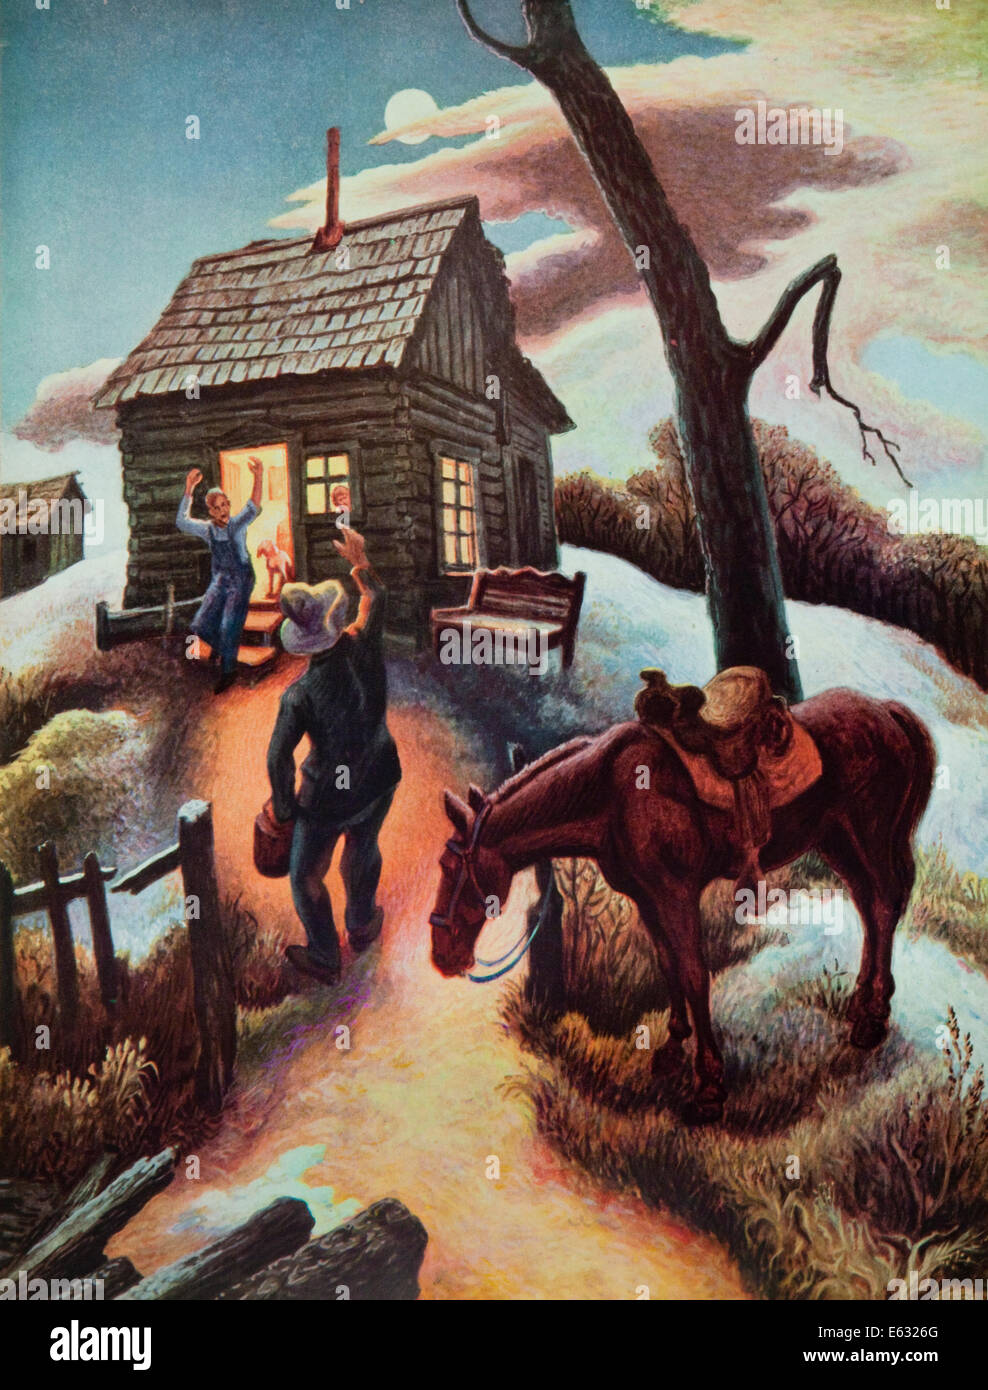 Painting Your Mobile Home on painting your house, painting your umbrella, painting your travel trailer, painting by the sea, painting your log cabin,